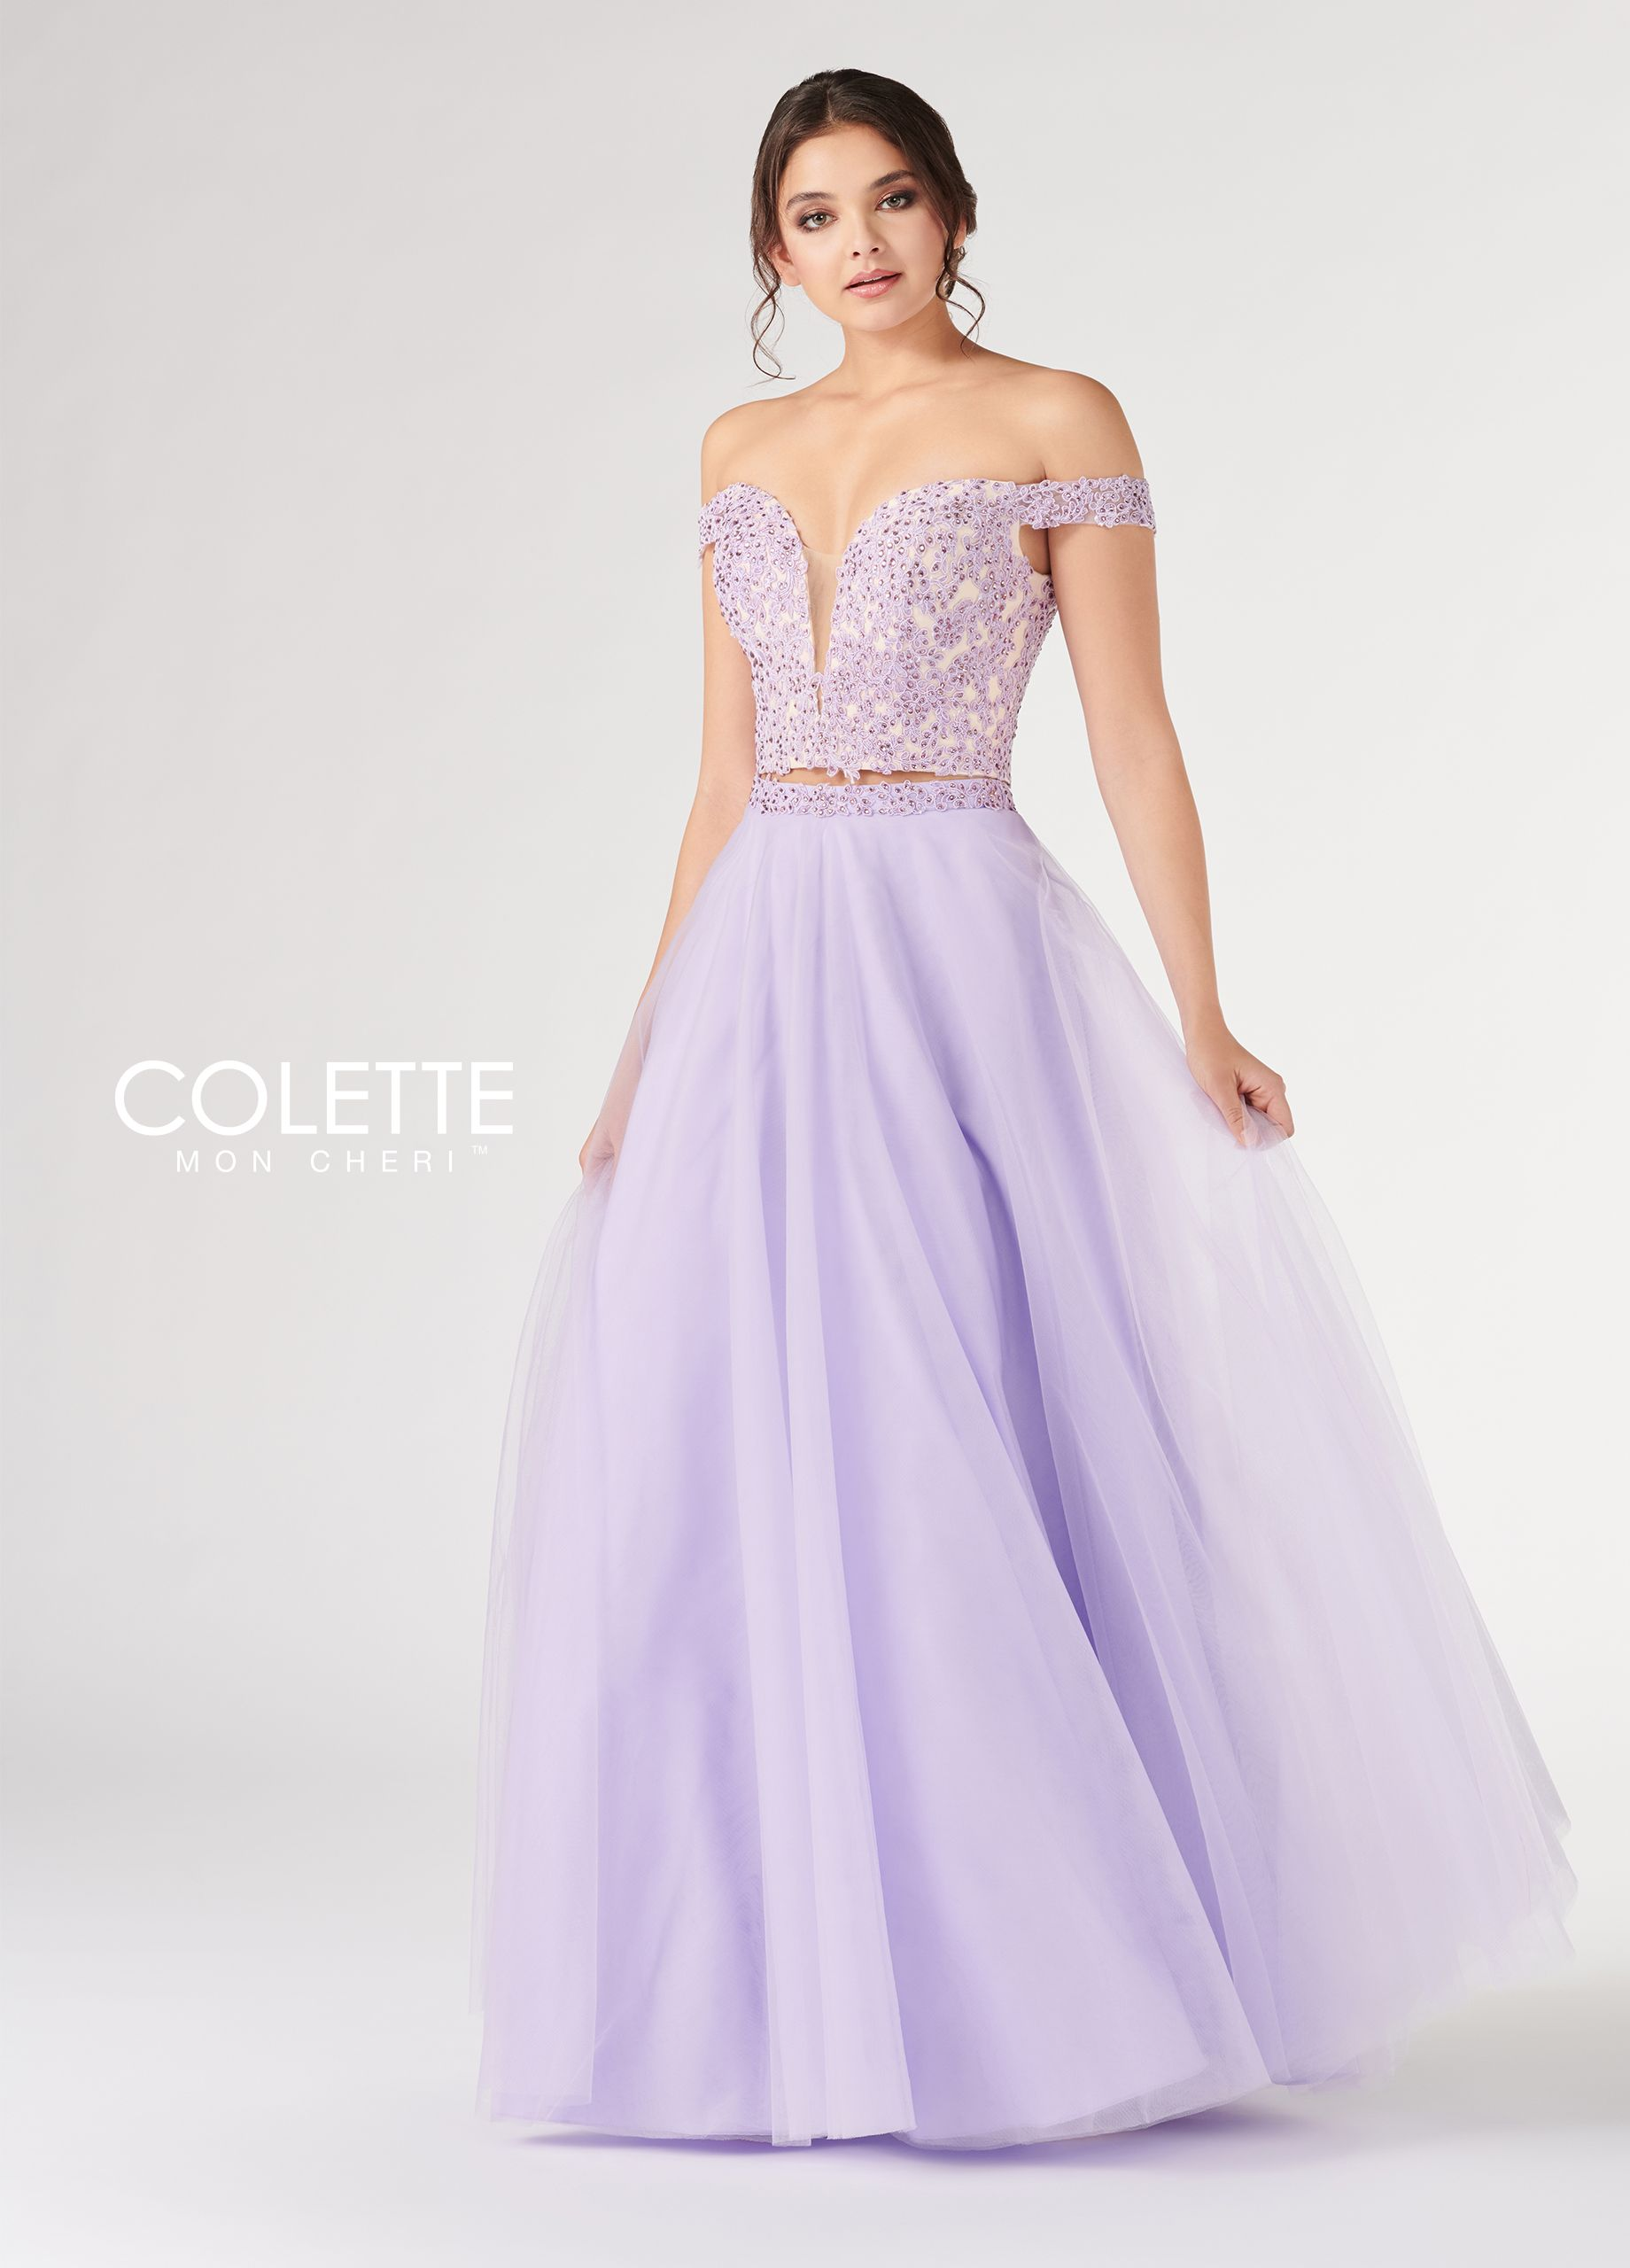 ab5d9ab7790b Colette for Mon Cheri CL19885 - Two piece ballgown dress set with lace and  beaded off the shoulder bodice, sheer inset sweetheart neckline, lace up  back, ...